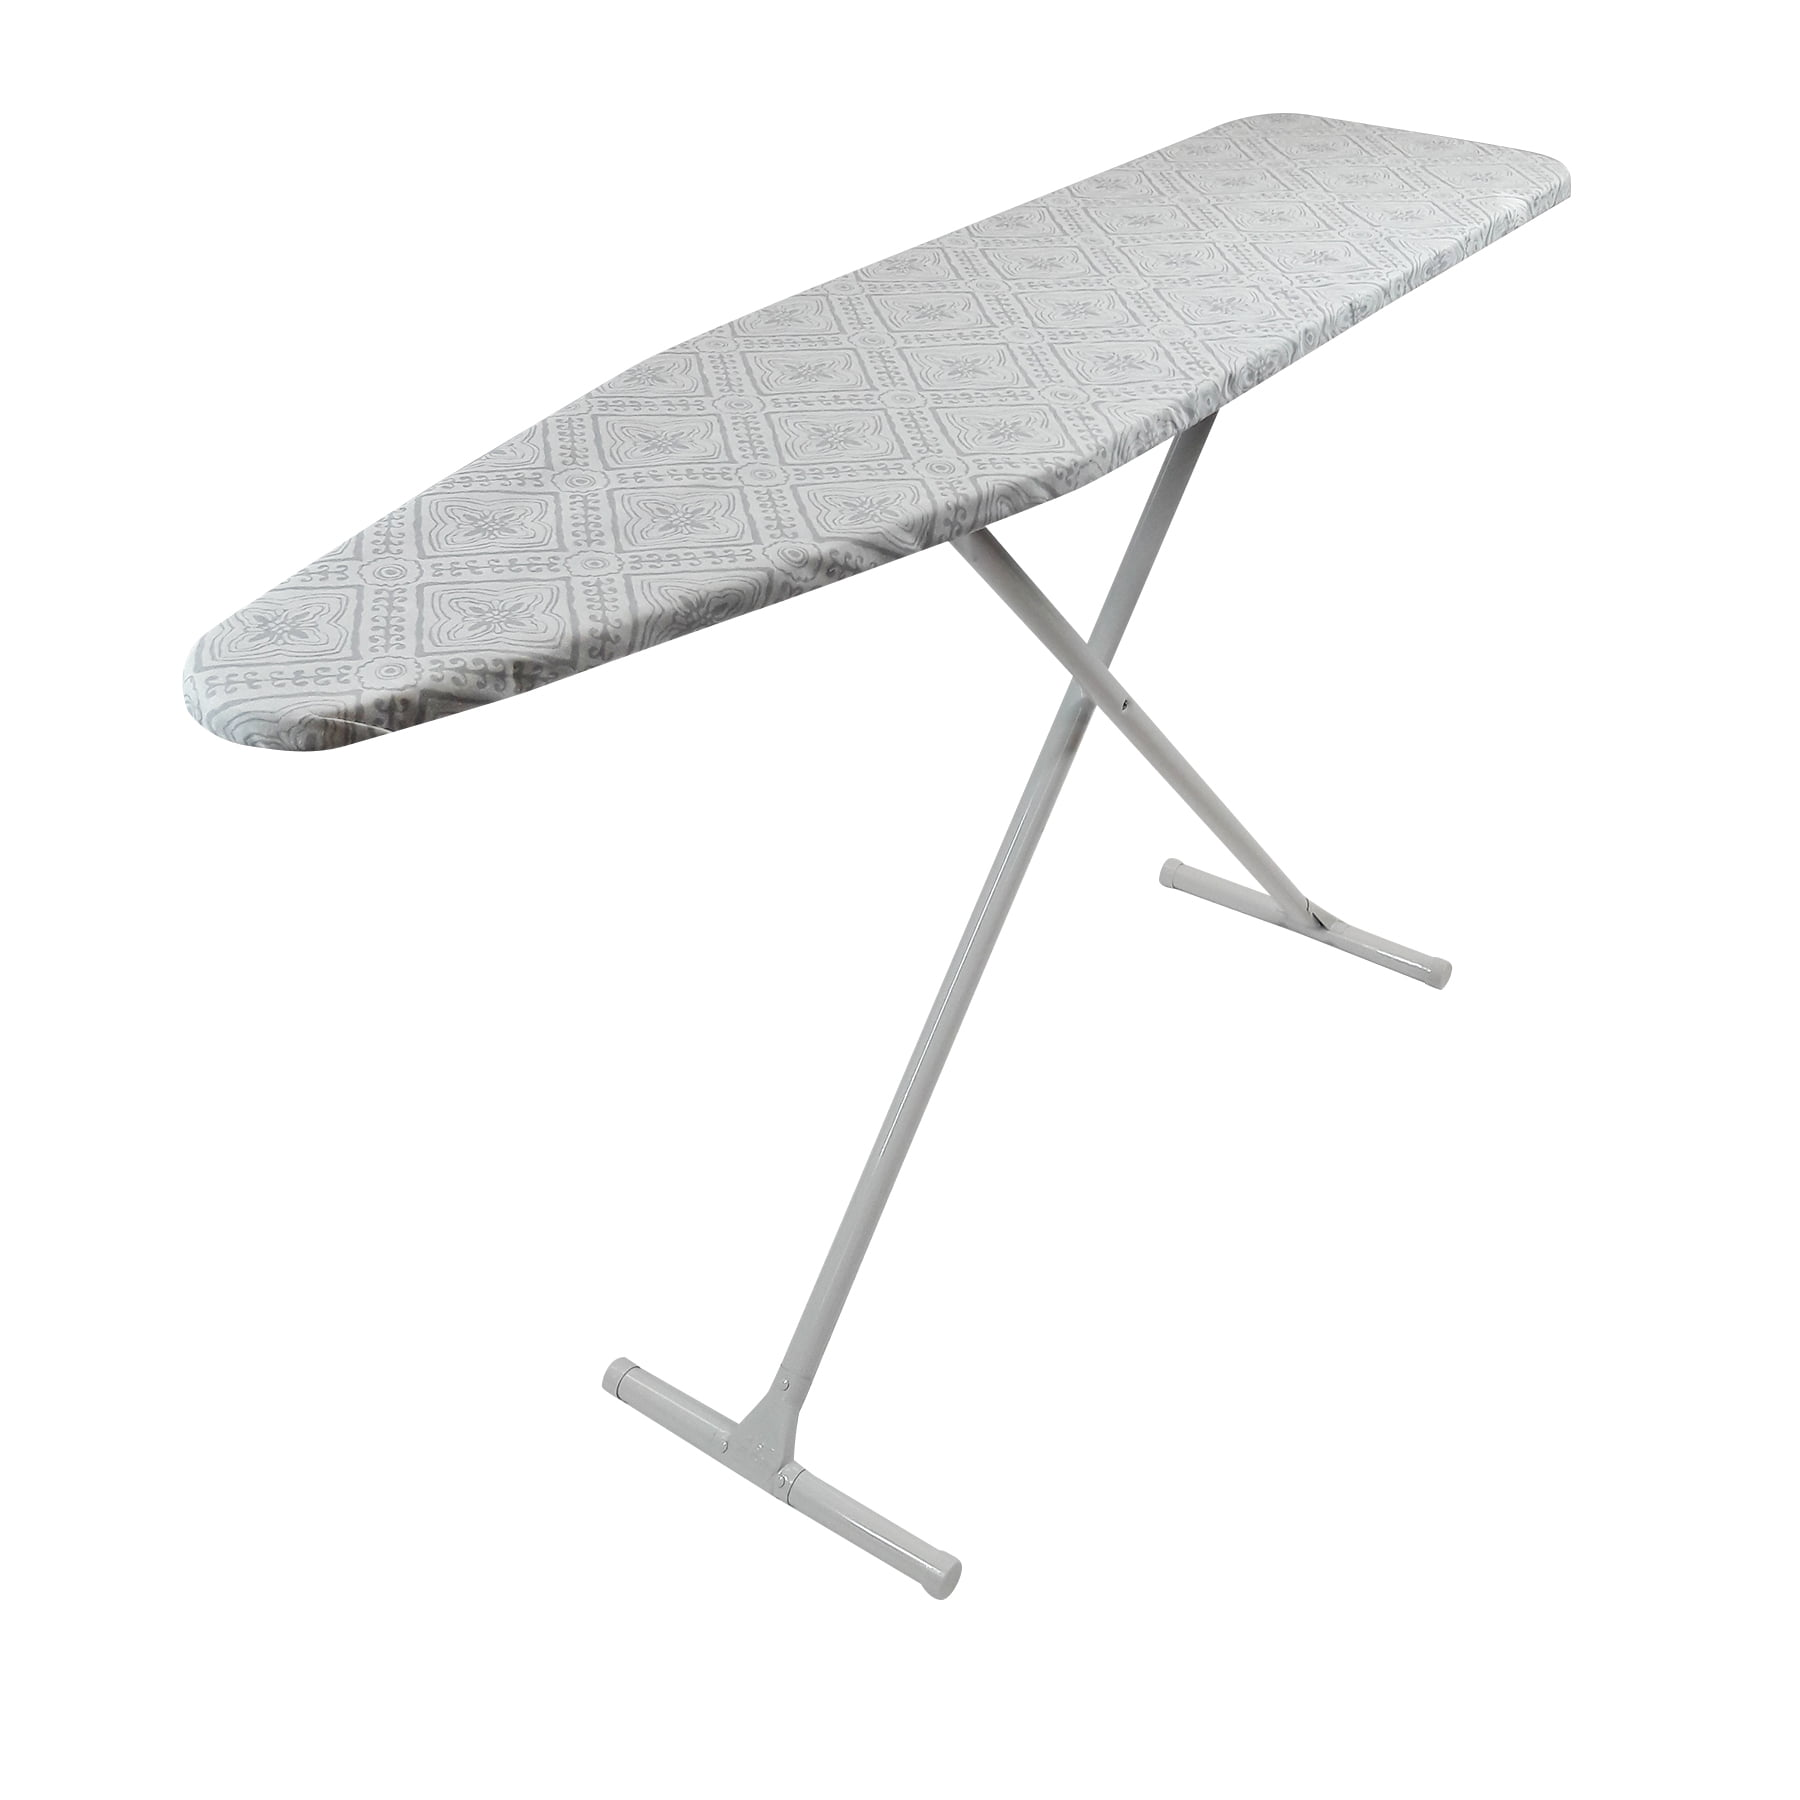 Grey Foldable Adjustable Small Ironing Board Cover and Pad Iron Board Hanger with Rest Shelf Table Top Ironing Board Ironing Board